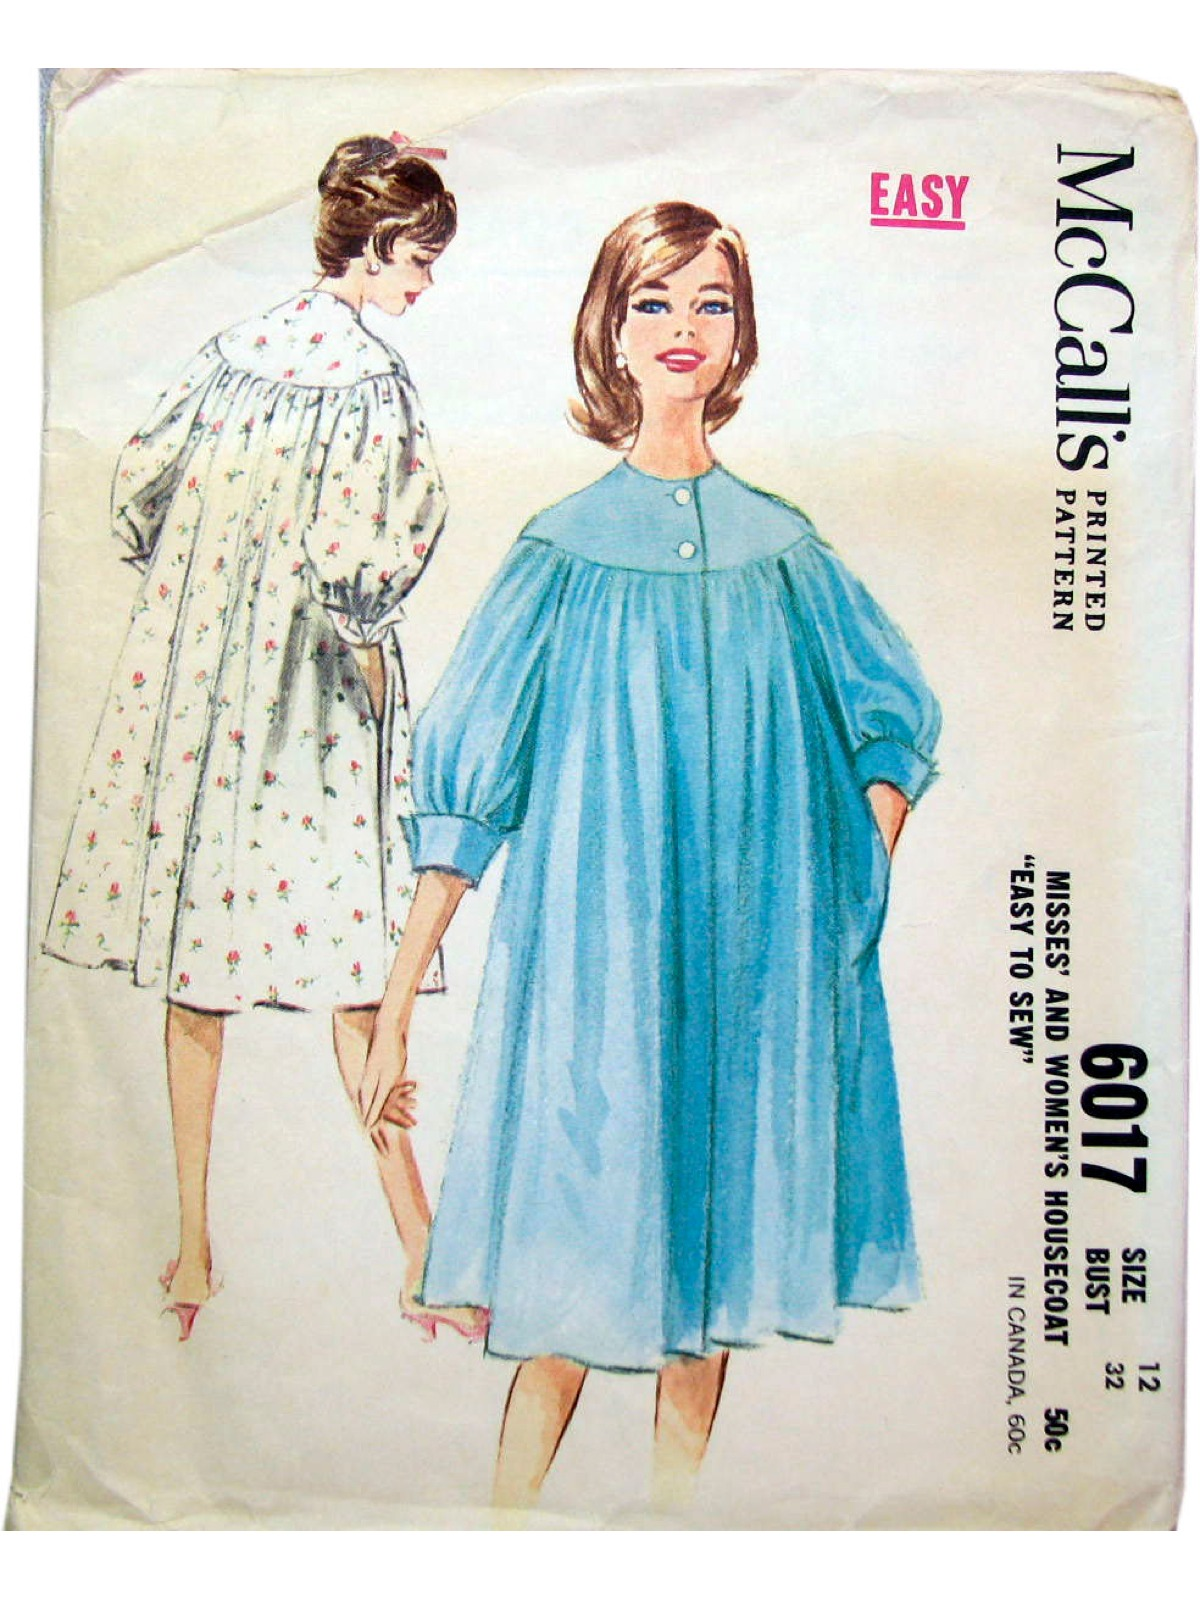 1960s Vintage Sewing Pattern  60s -McCalls Pattern No. 6017- Misses  housecoat. Raglan sleeved housecoat ac2435cb1